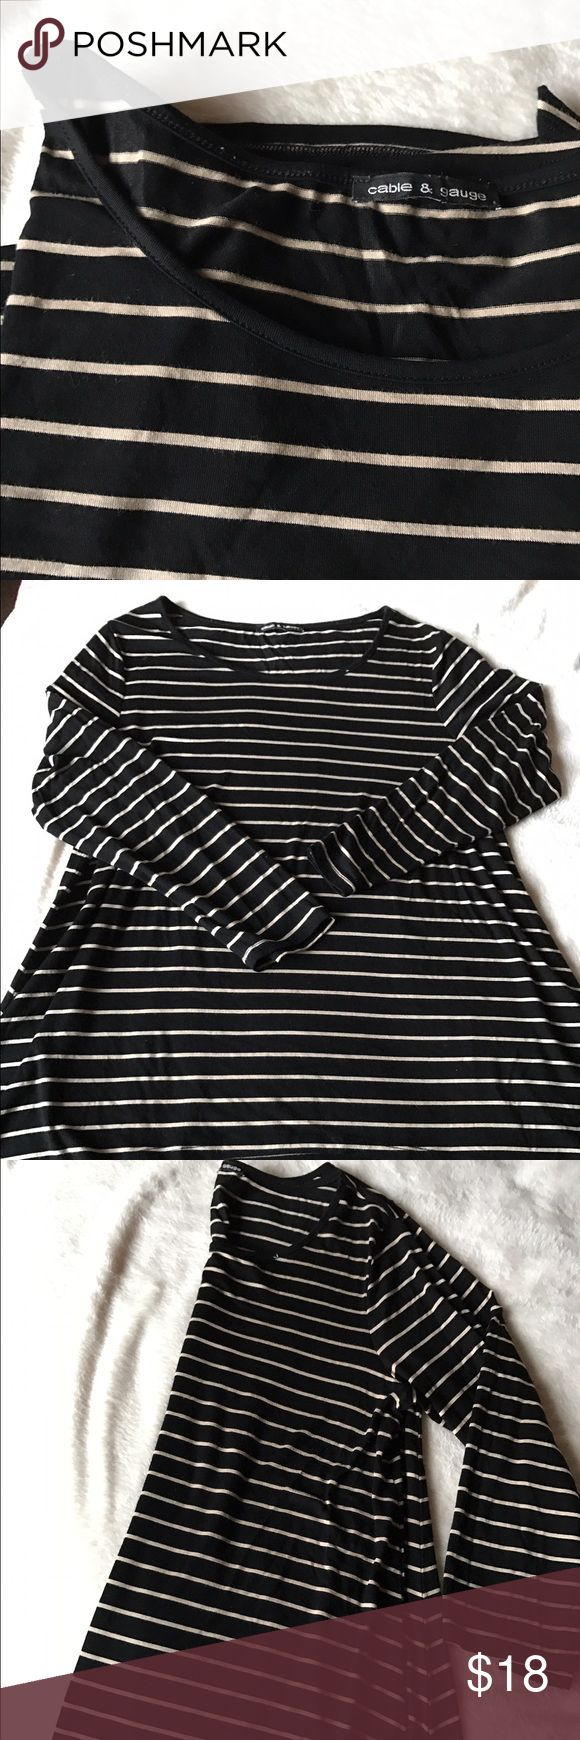 Striped slouchy top! Super soft slouchy striped top! So cute with leggings and boots! Great condition! Cable & Gauge Tops Tees - Long Sleeve